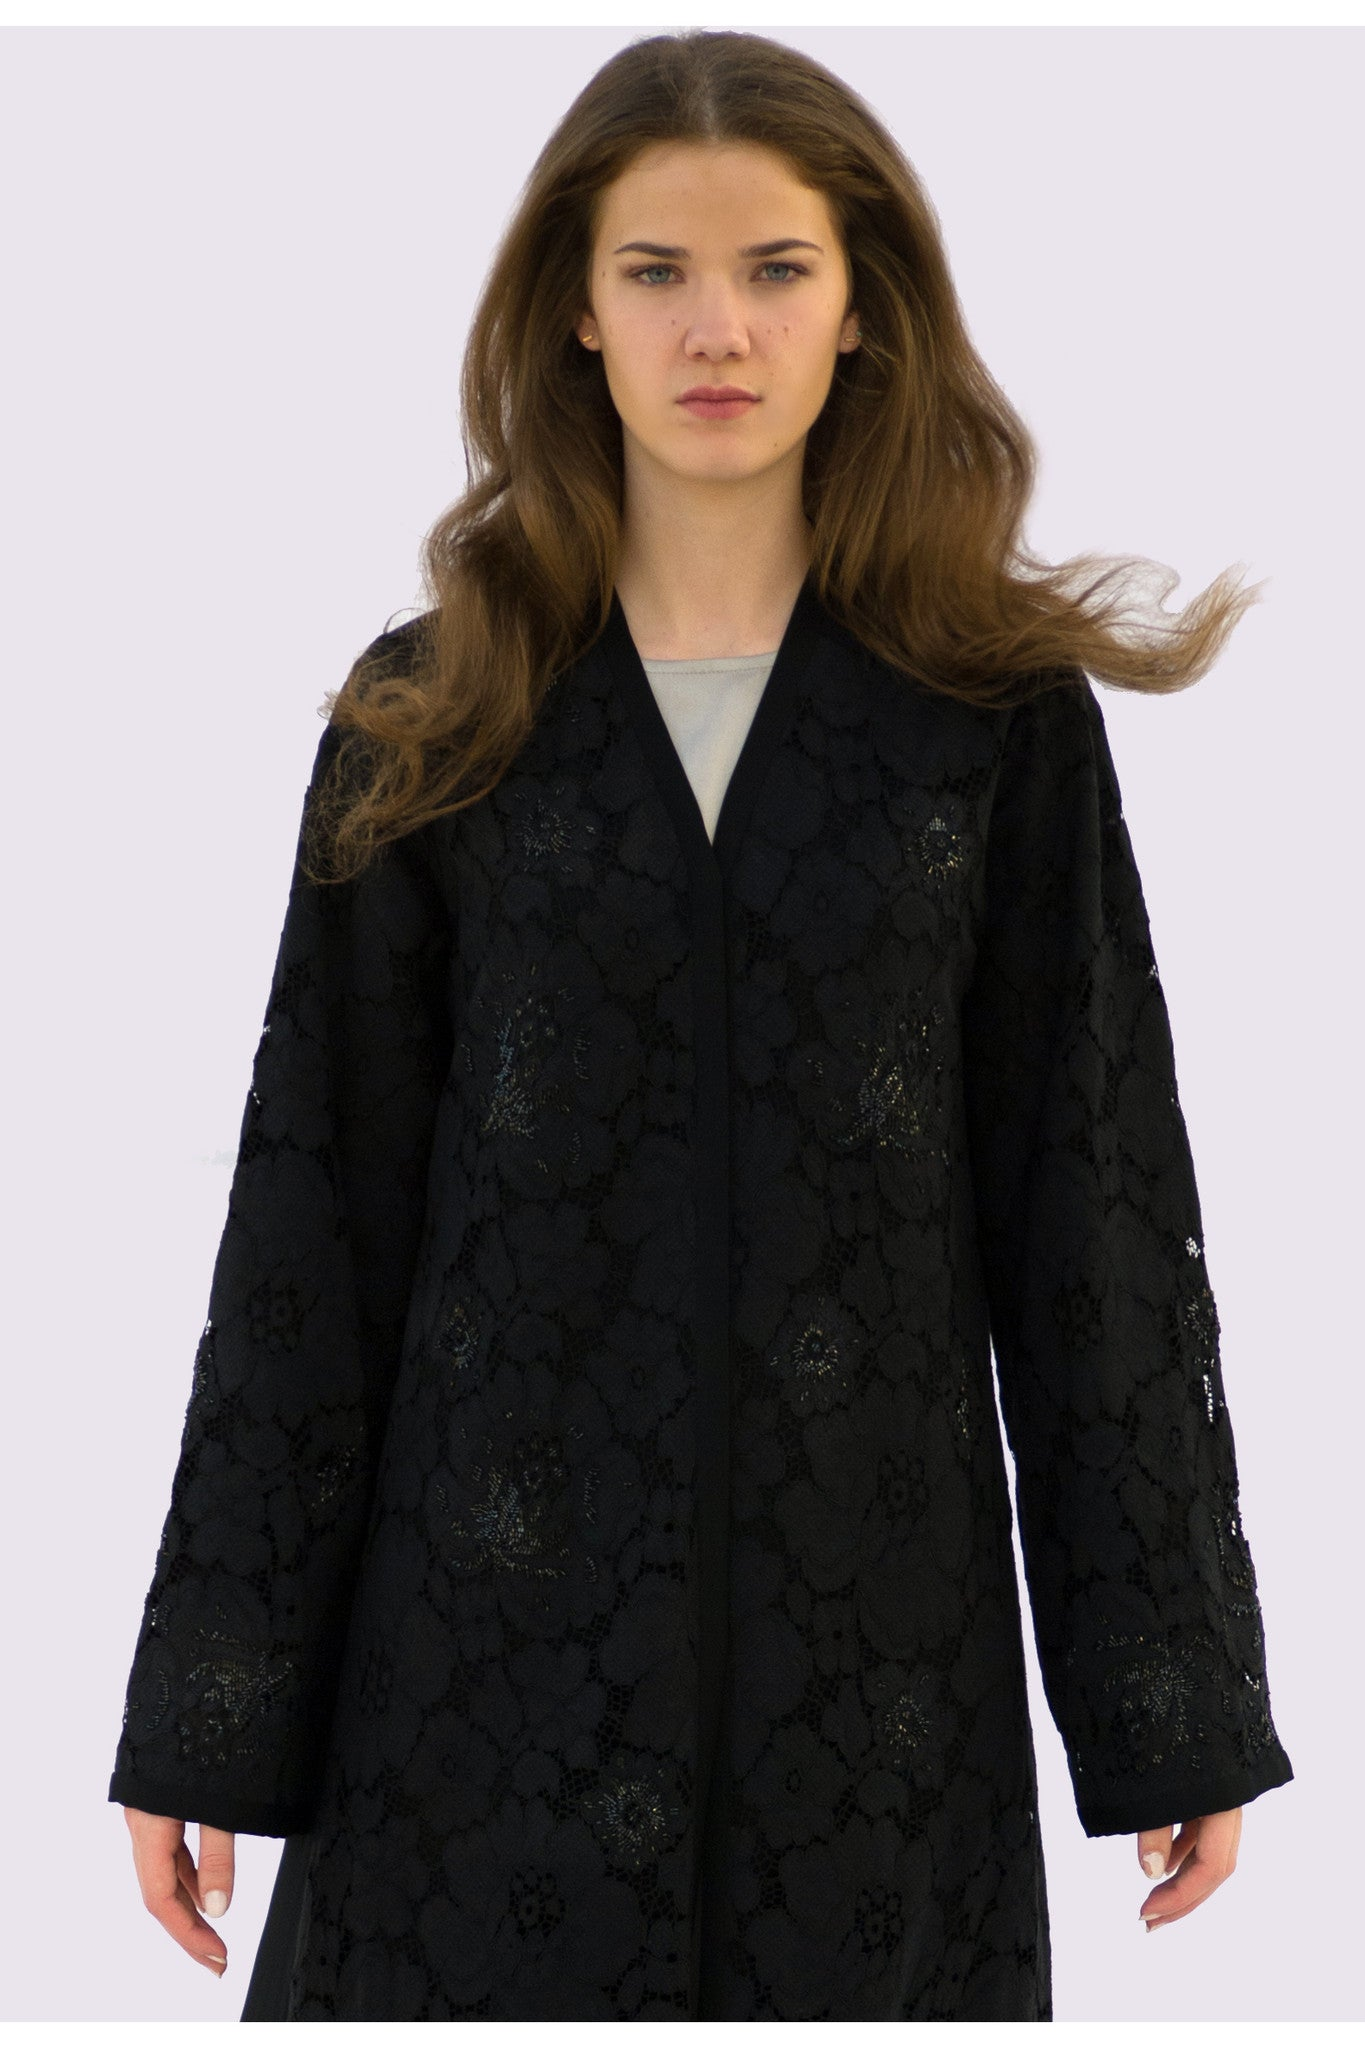 AUDREY - ALX2112B - Arabesque Classic cut abaya shape embellished with lace on top of abaya fabric, randomly hand-embroidered with black shiny beads on sleeves and front + Back in plain black.